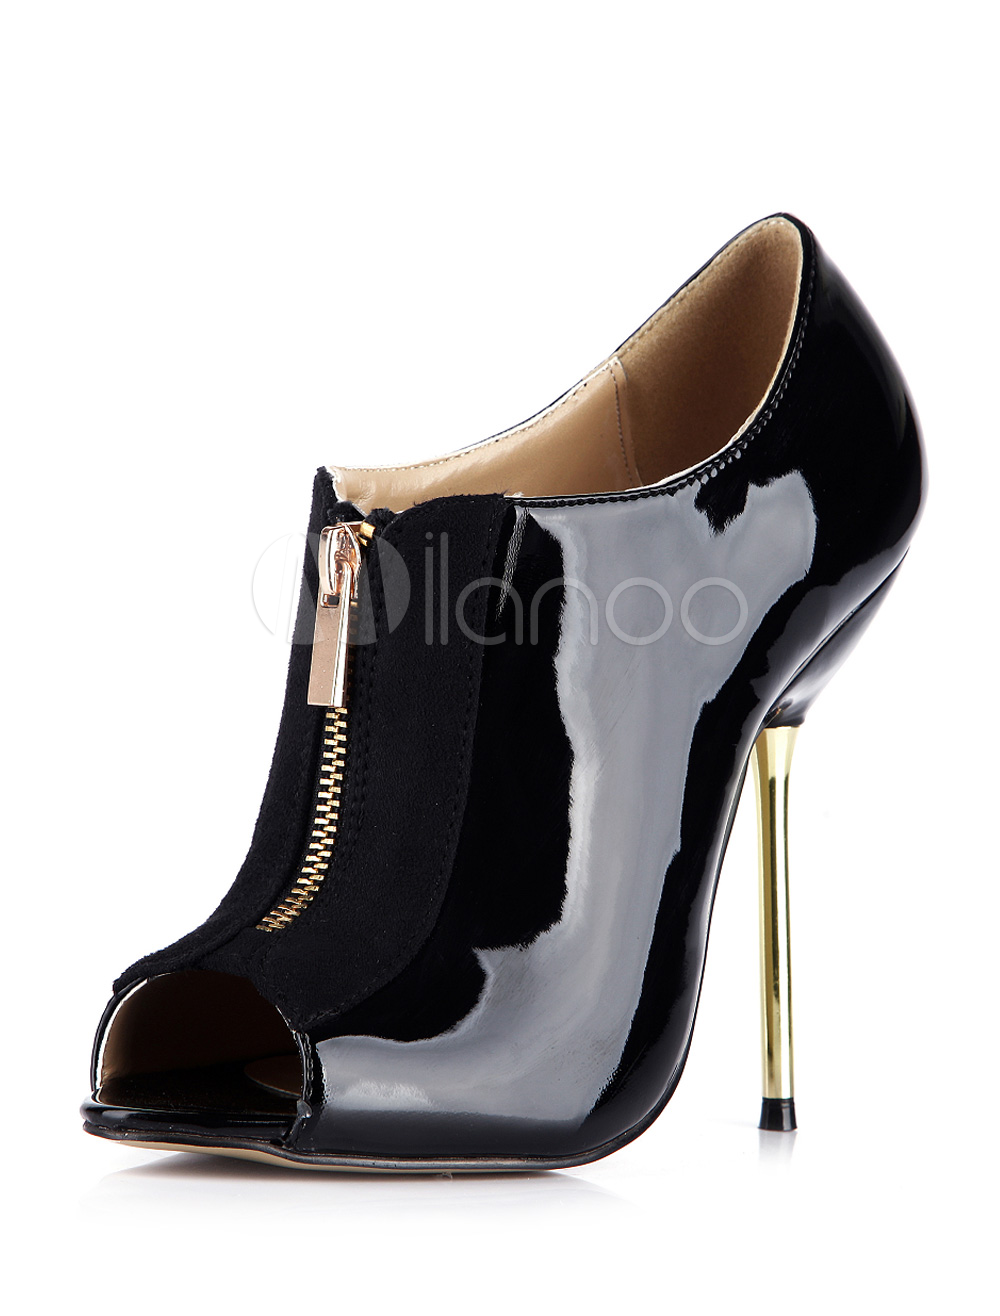 Black Peep Toe Stiletto Heel Patent PU Pretty Heeled Ankle Boots For Woman